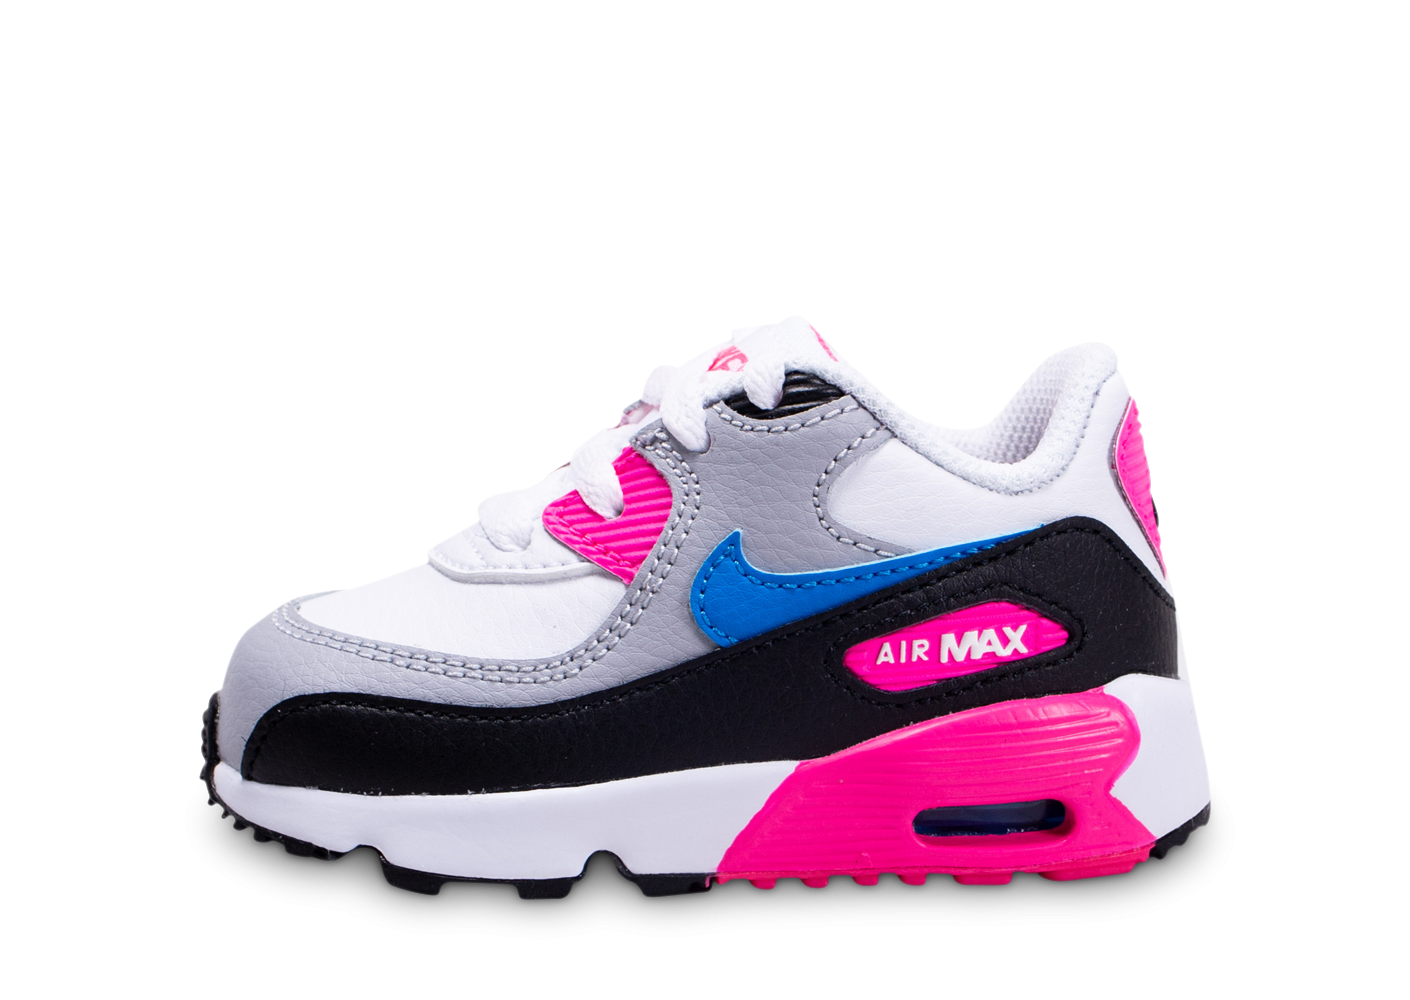 Nike Air Max 90 Leather blanc rose bleu bébé